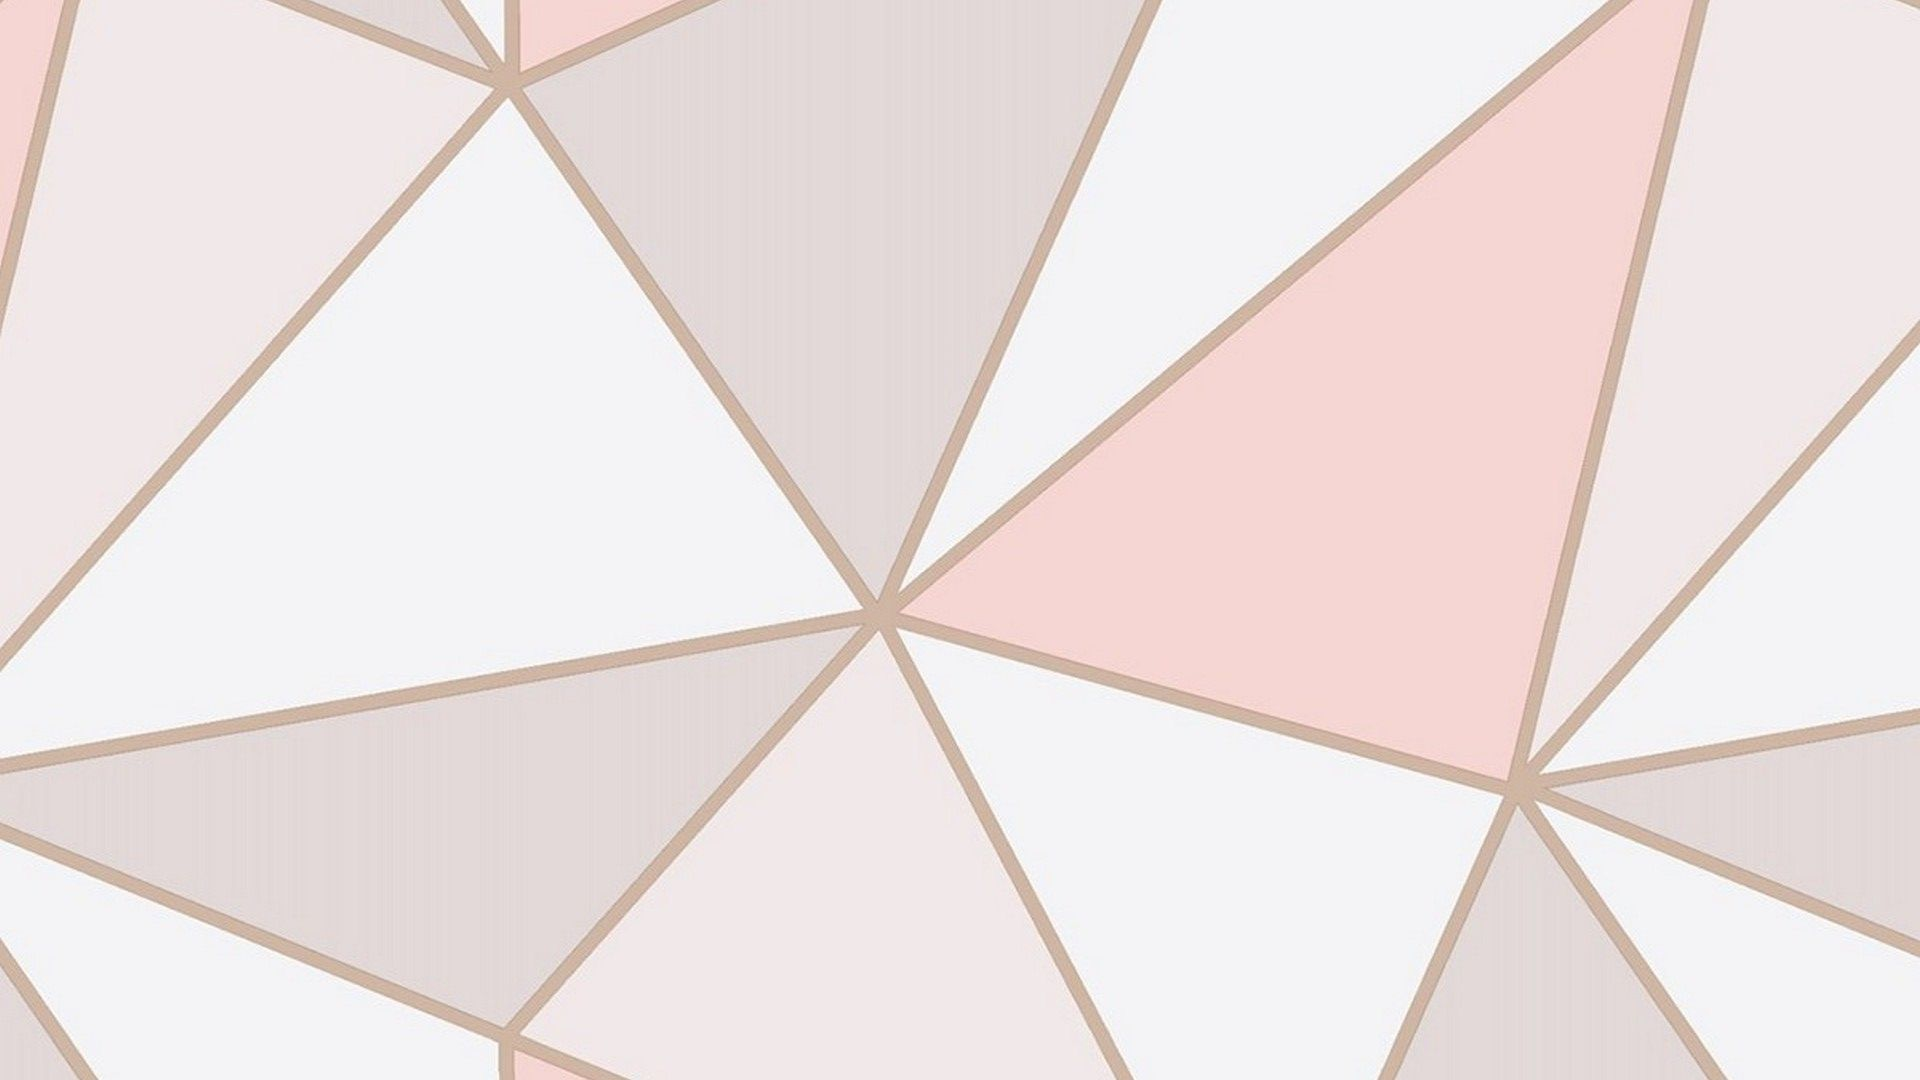 Wallpaper Rose Gold Marble Desktop Best Hd Wallpapers Gold Marble Wallpaper Rose Gold Marble Wallpaper Rose Gold Wallpaper